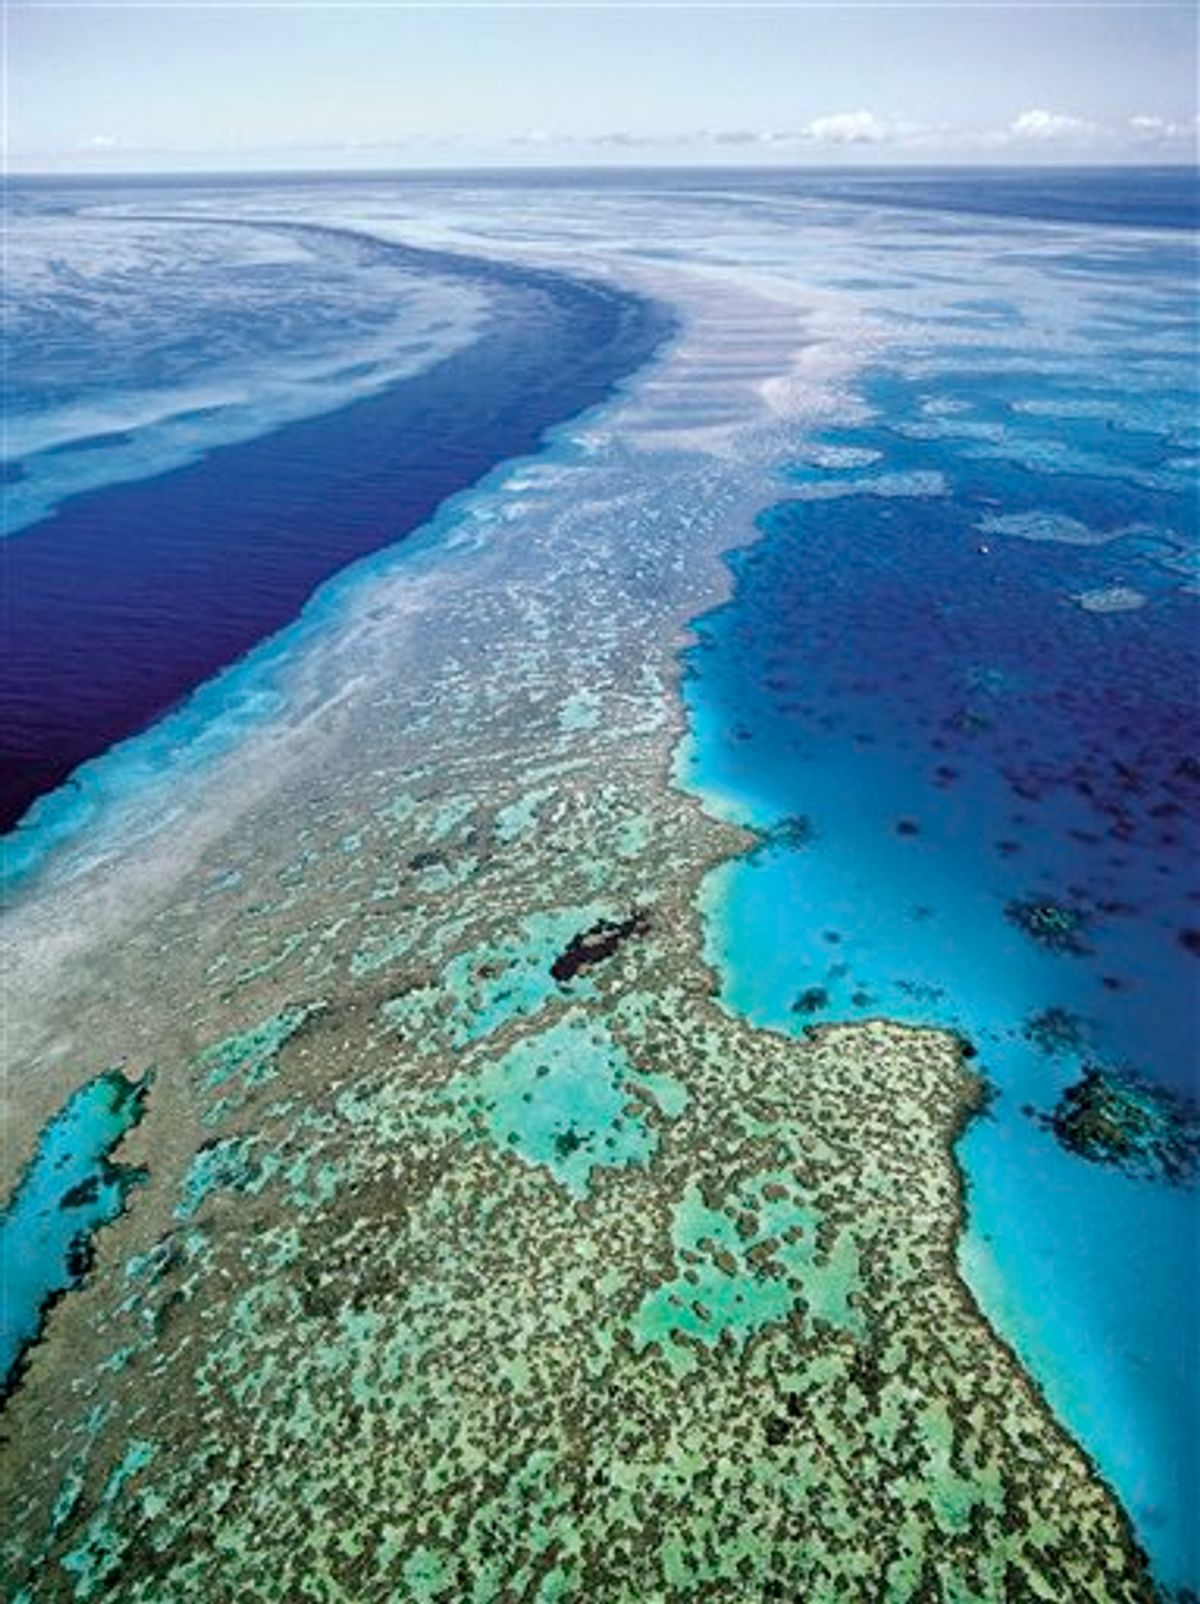 FILE - In this Sept. 2001 file photo provided by Queensland Tourism, the Great Barrier Reef off Australia's Queensland state is shown in an aerial view. Researchers said it is too early to know exactly how much of the reef has been affected by recent flooding, which carved a wide path of destruction on land before draining into the sea off the country's northeast coast. (AP Photo/Queensland Tourism, File)  EDITORIAL USE ONLY  (AP)